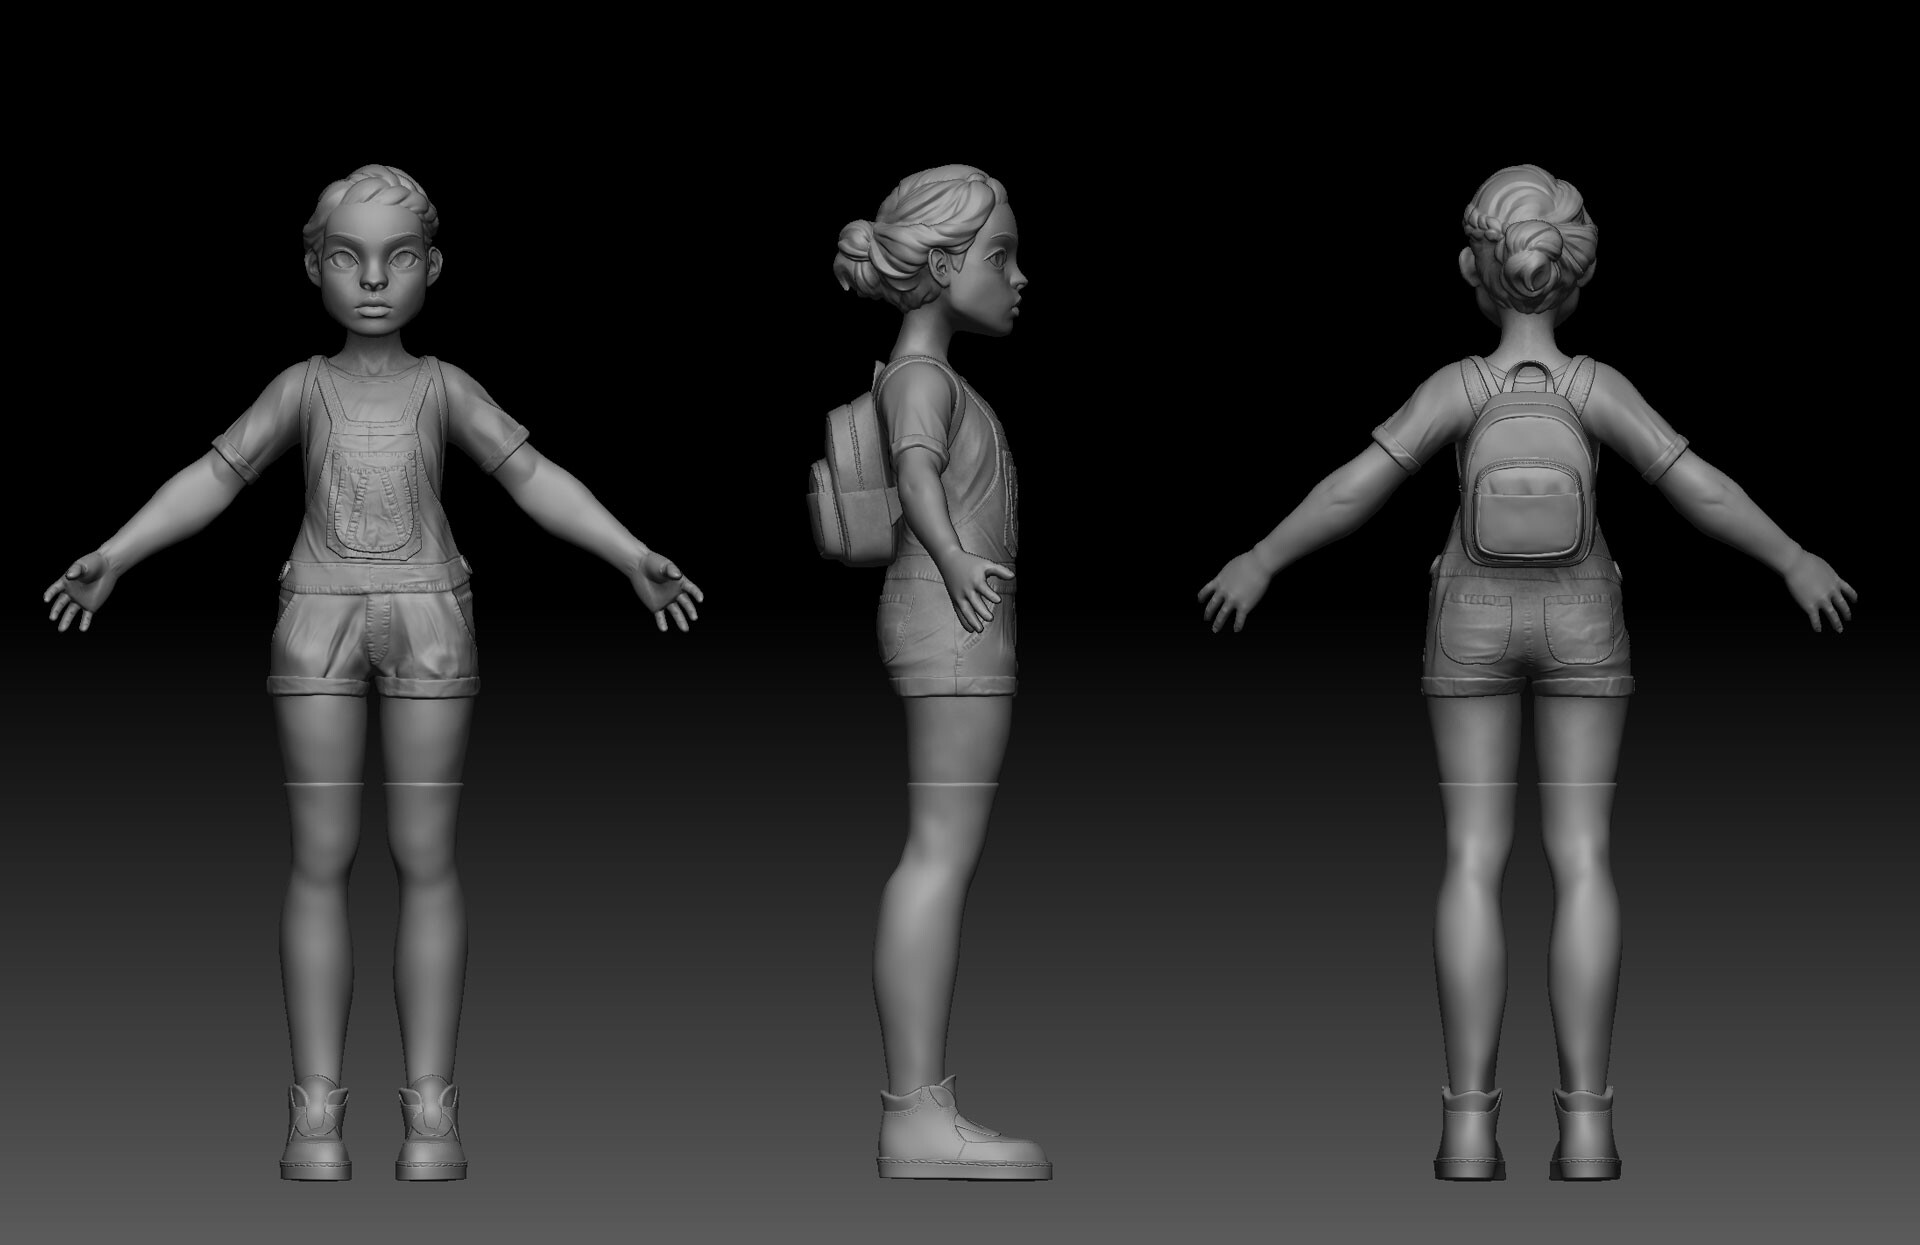 Pierre bourgerie zbrush document5